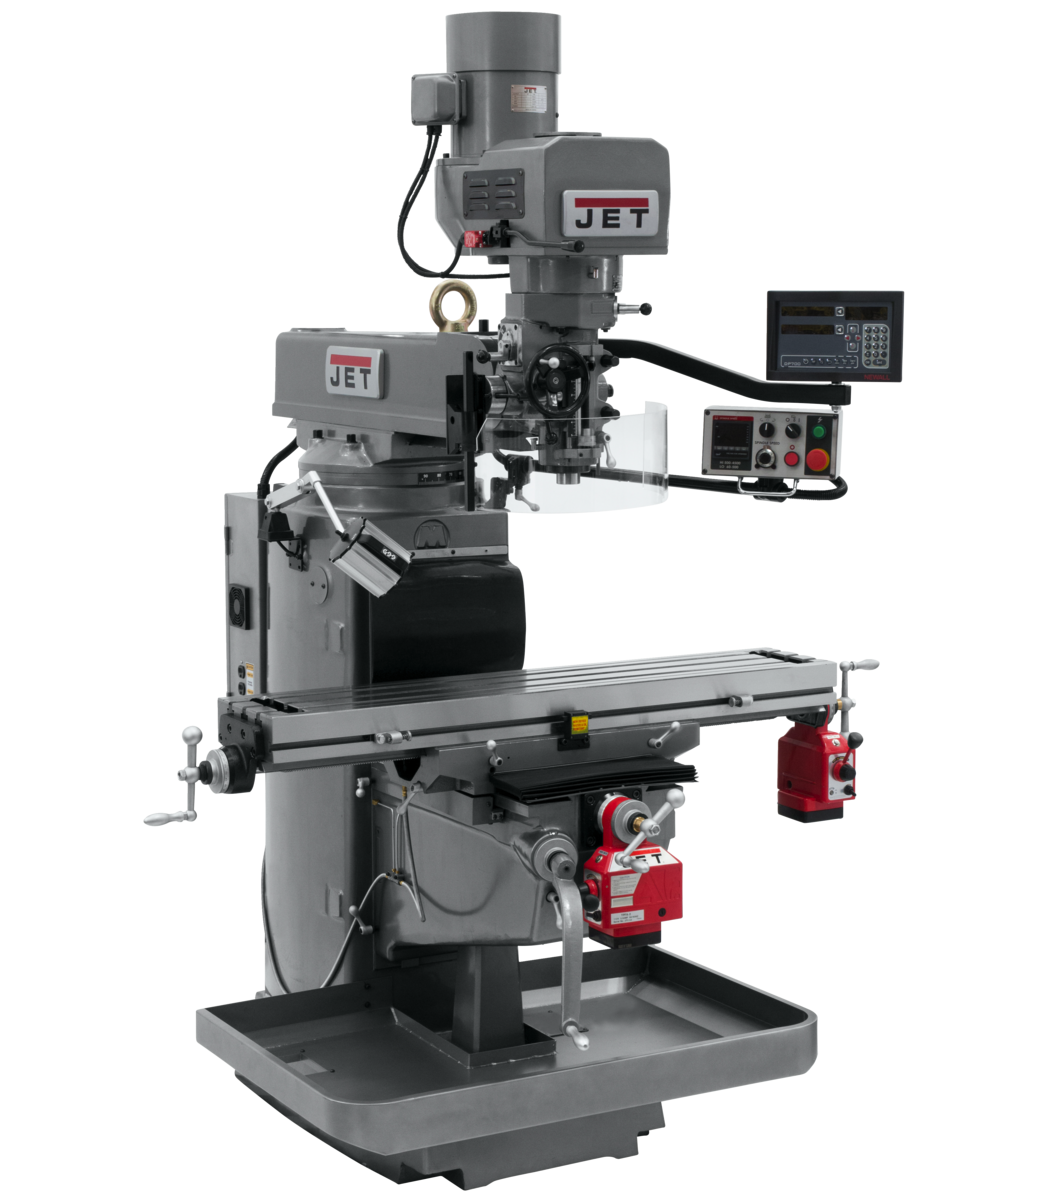 JTM-1050EVS2/230 Mill With 3-Axis Newall DP700 DRO (Knee) With X and Y-Axis Powerfeeds